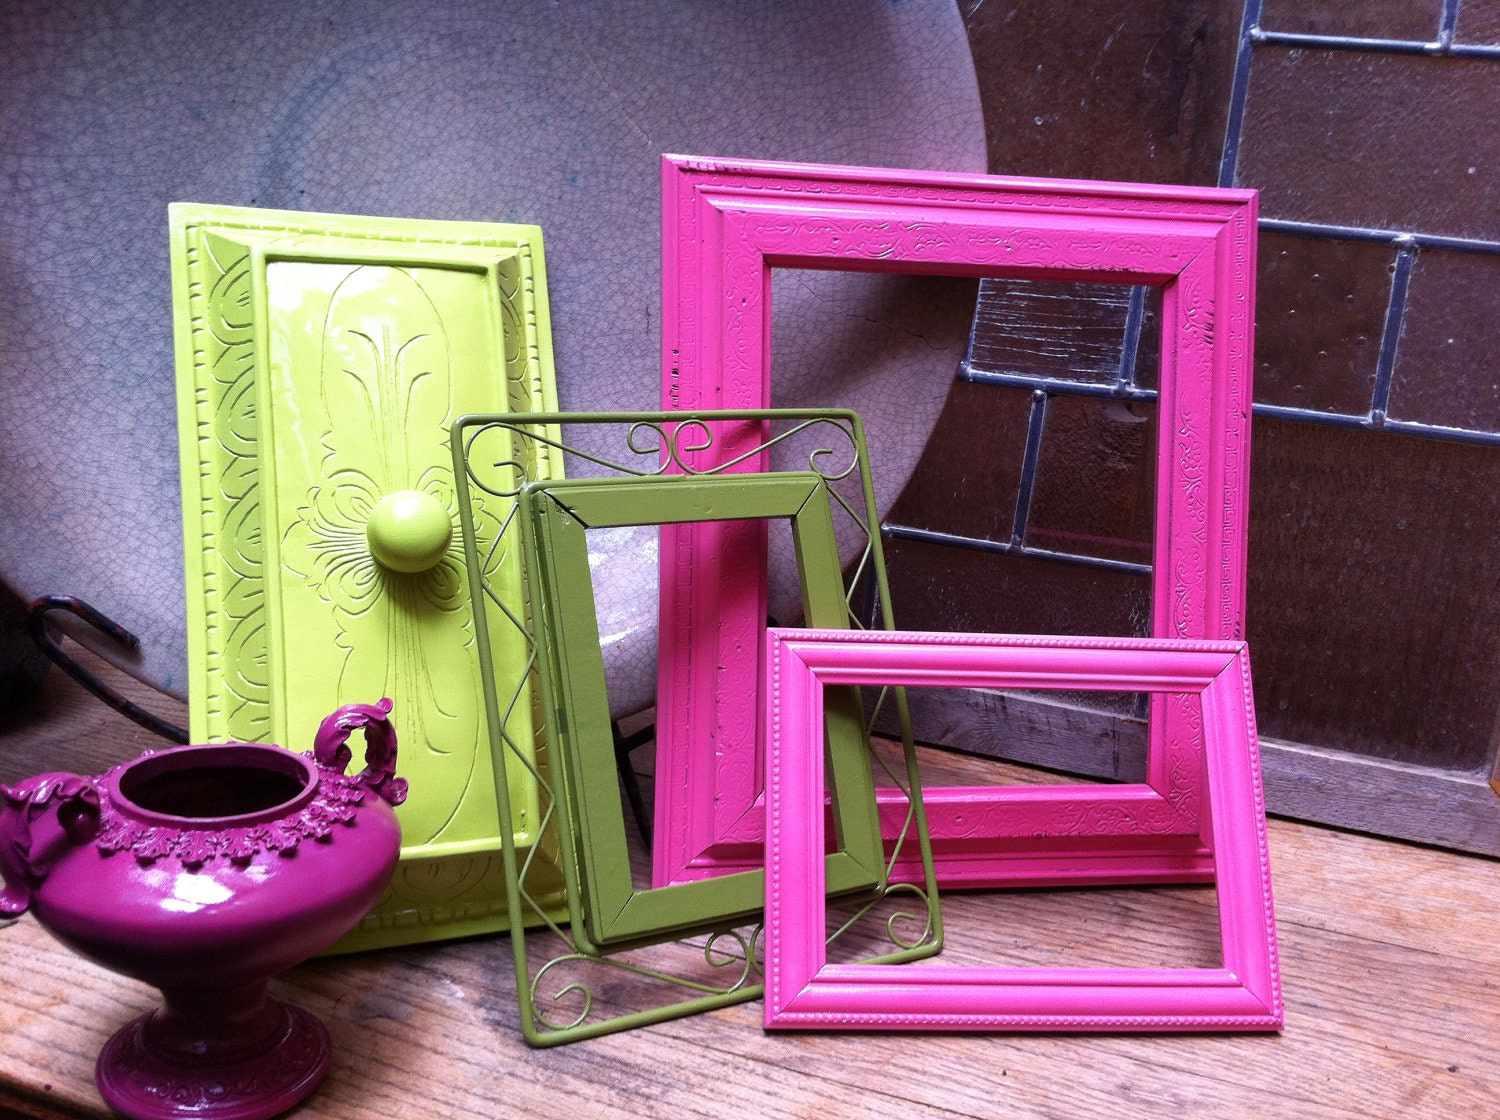 Upcycled Home Decor Frame and Figurine Set